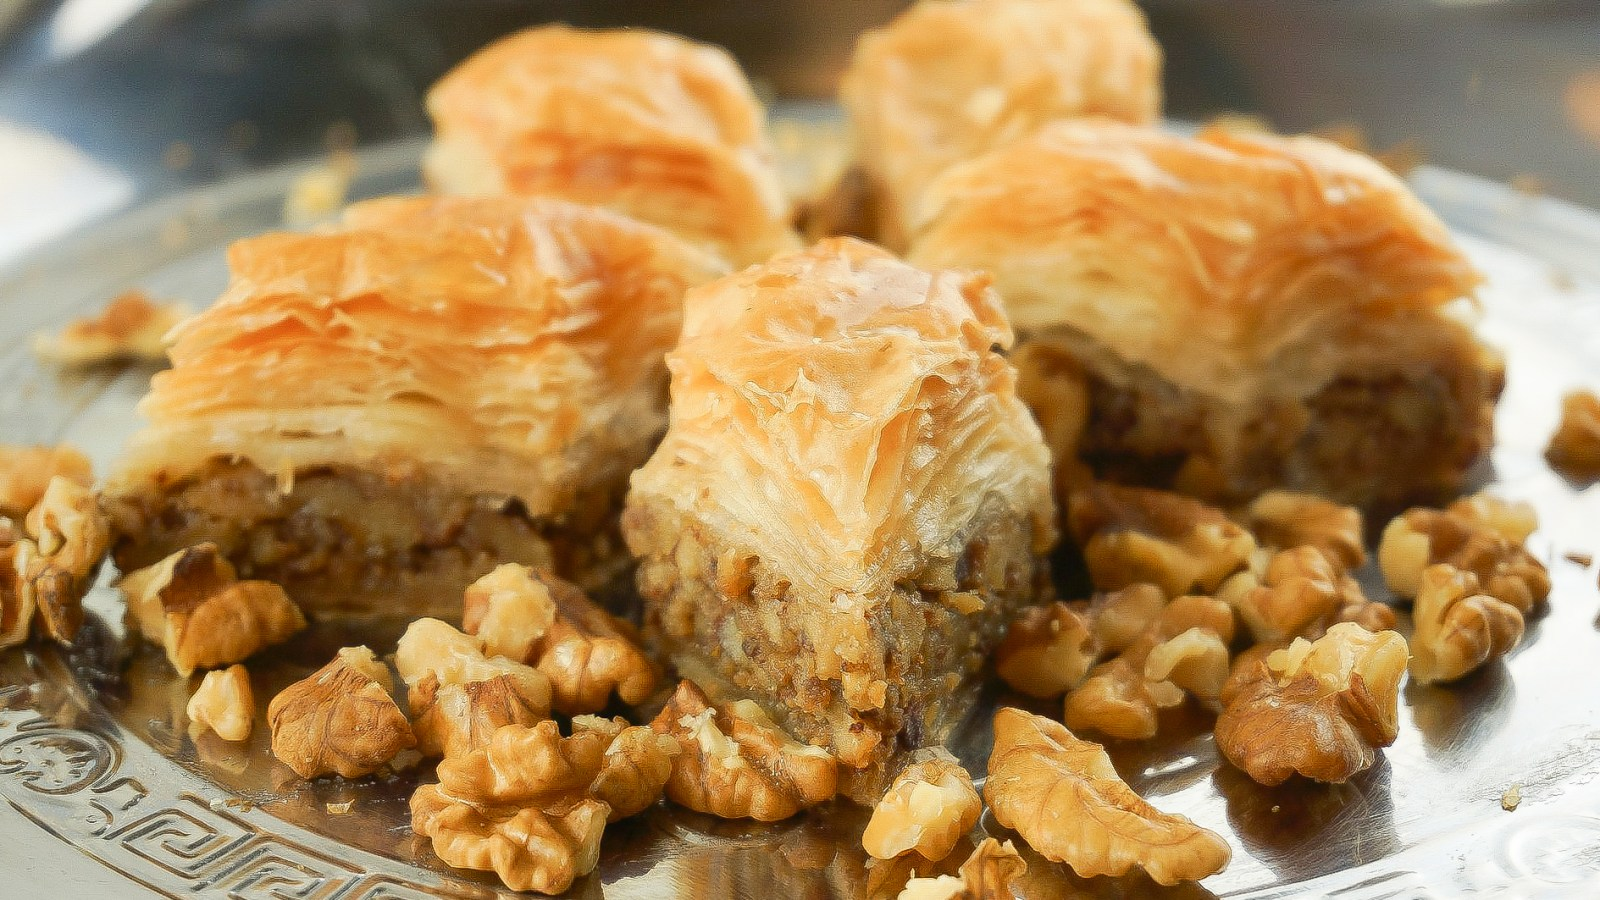 Simple honey walnut baklava recipe | How to make baklava | Greek baklava #baklava